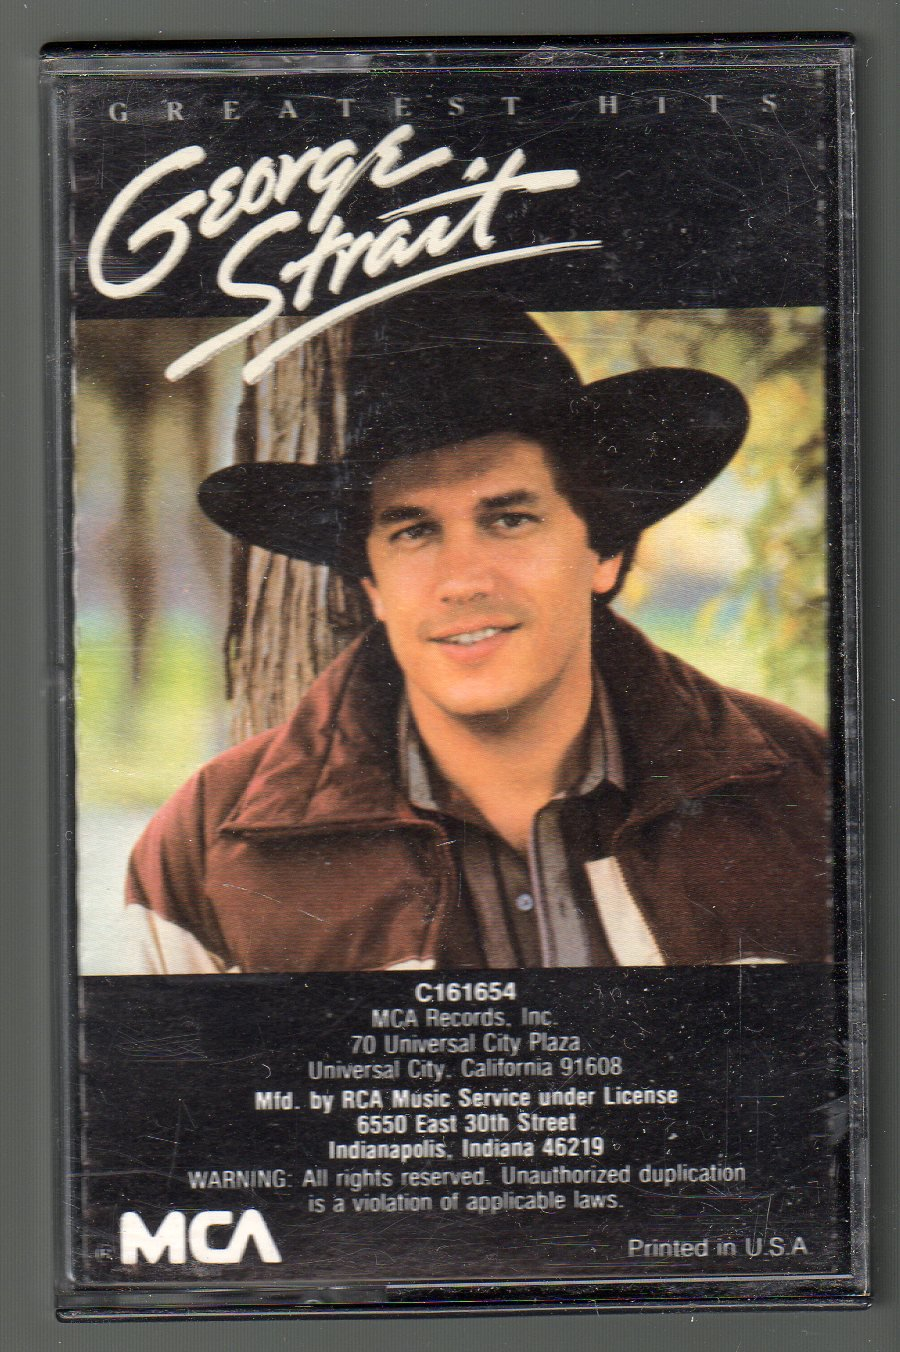 George Strait - Greatest Hits 1985 MCA Cassette Tape